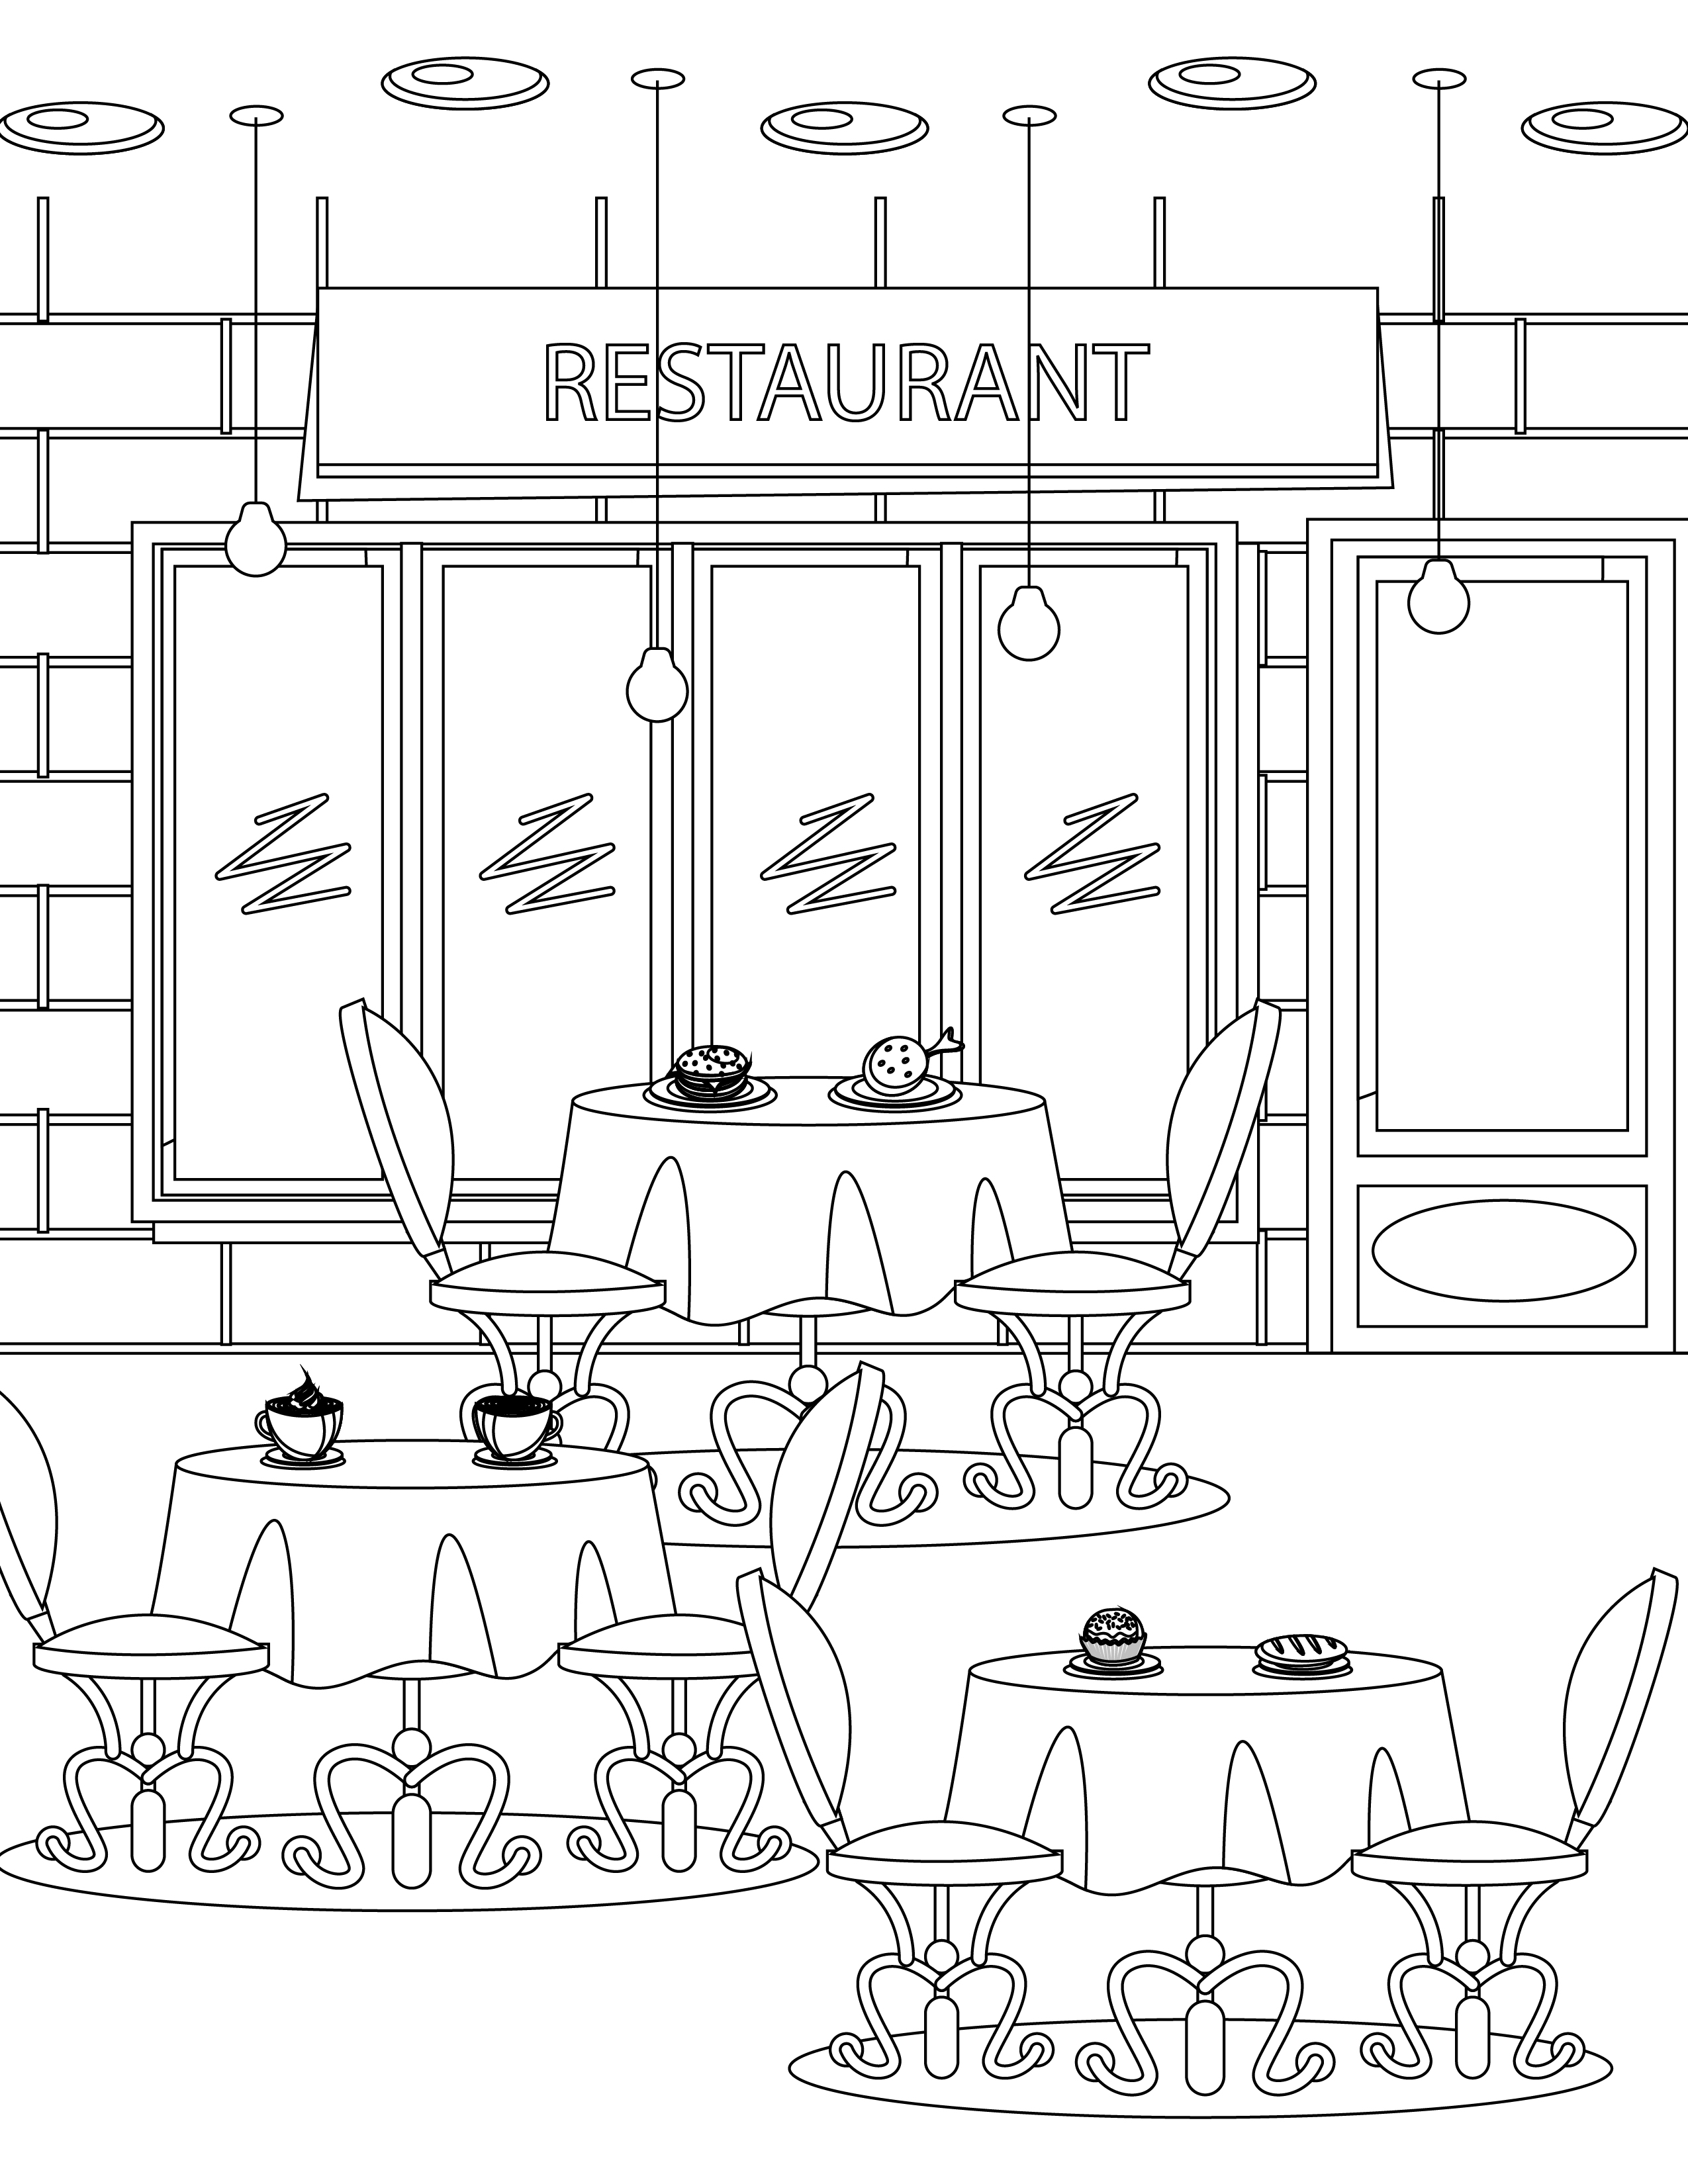 Resturant Coloring Page